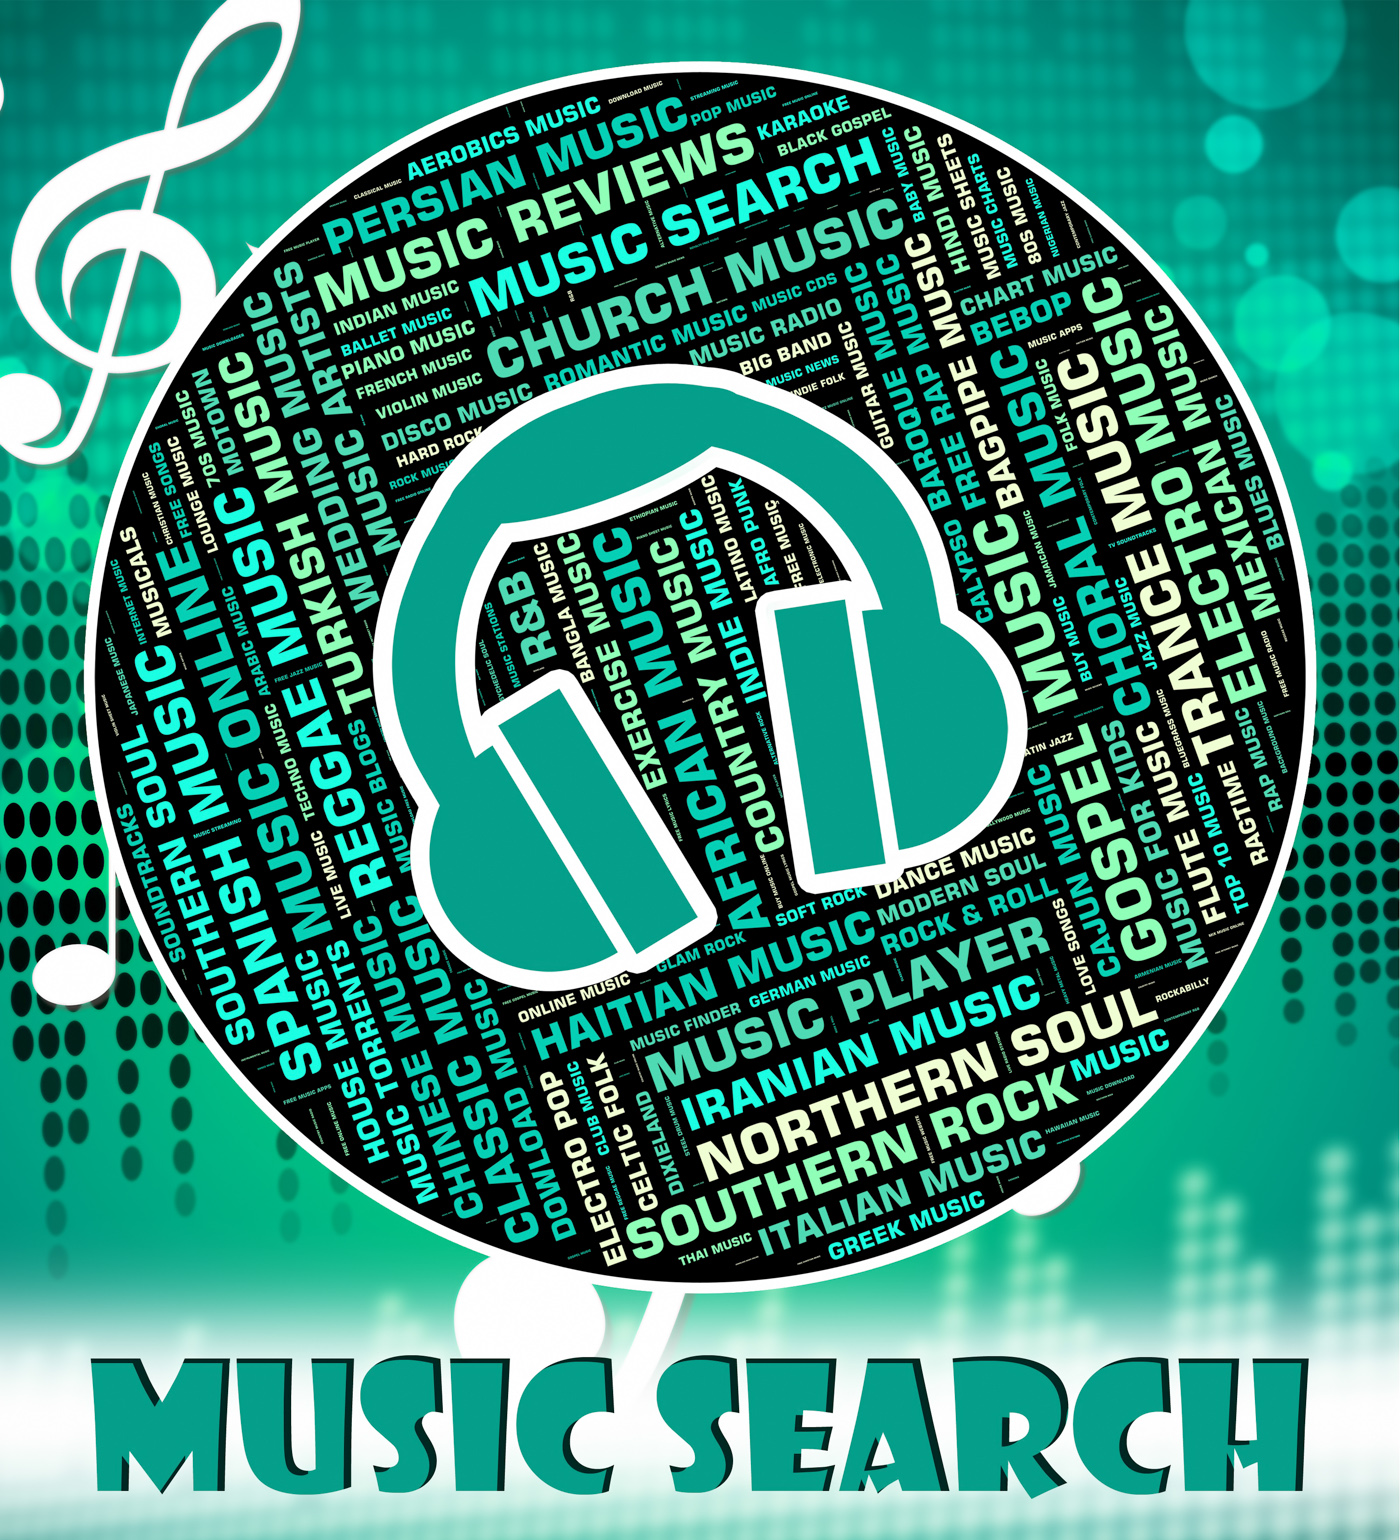 Free photo: Music Search Represents Sound Track And Audio